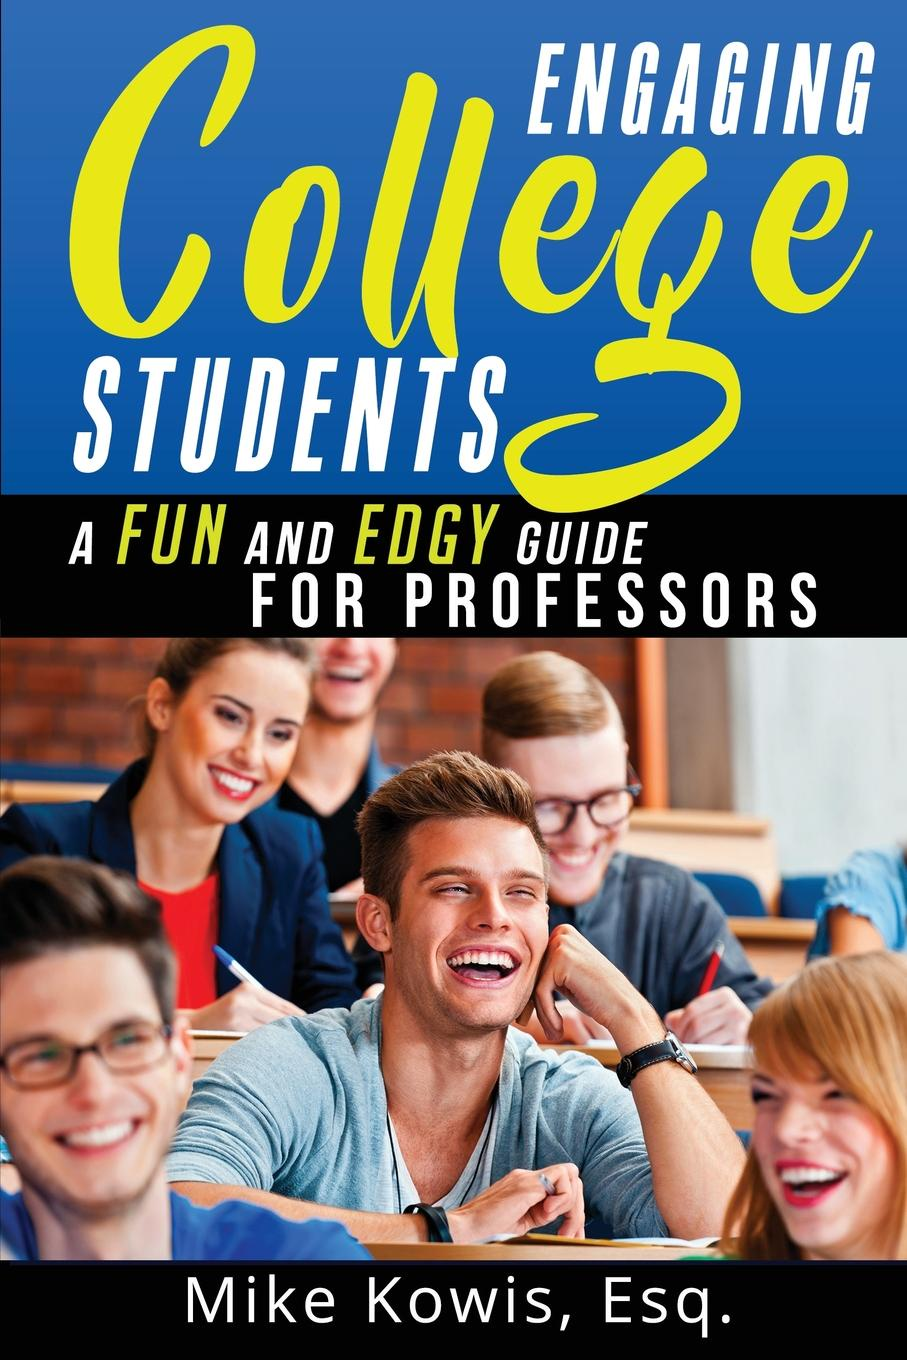 Mike Kowis Engaging College Students. A Fun and Edgy Guide for Professors